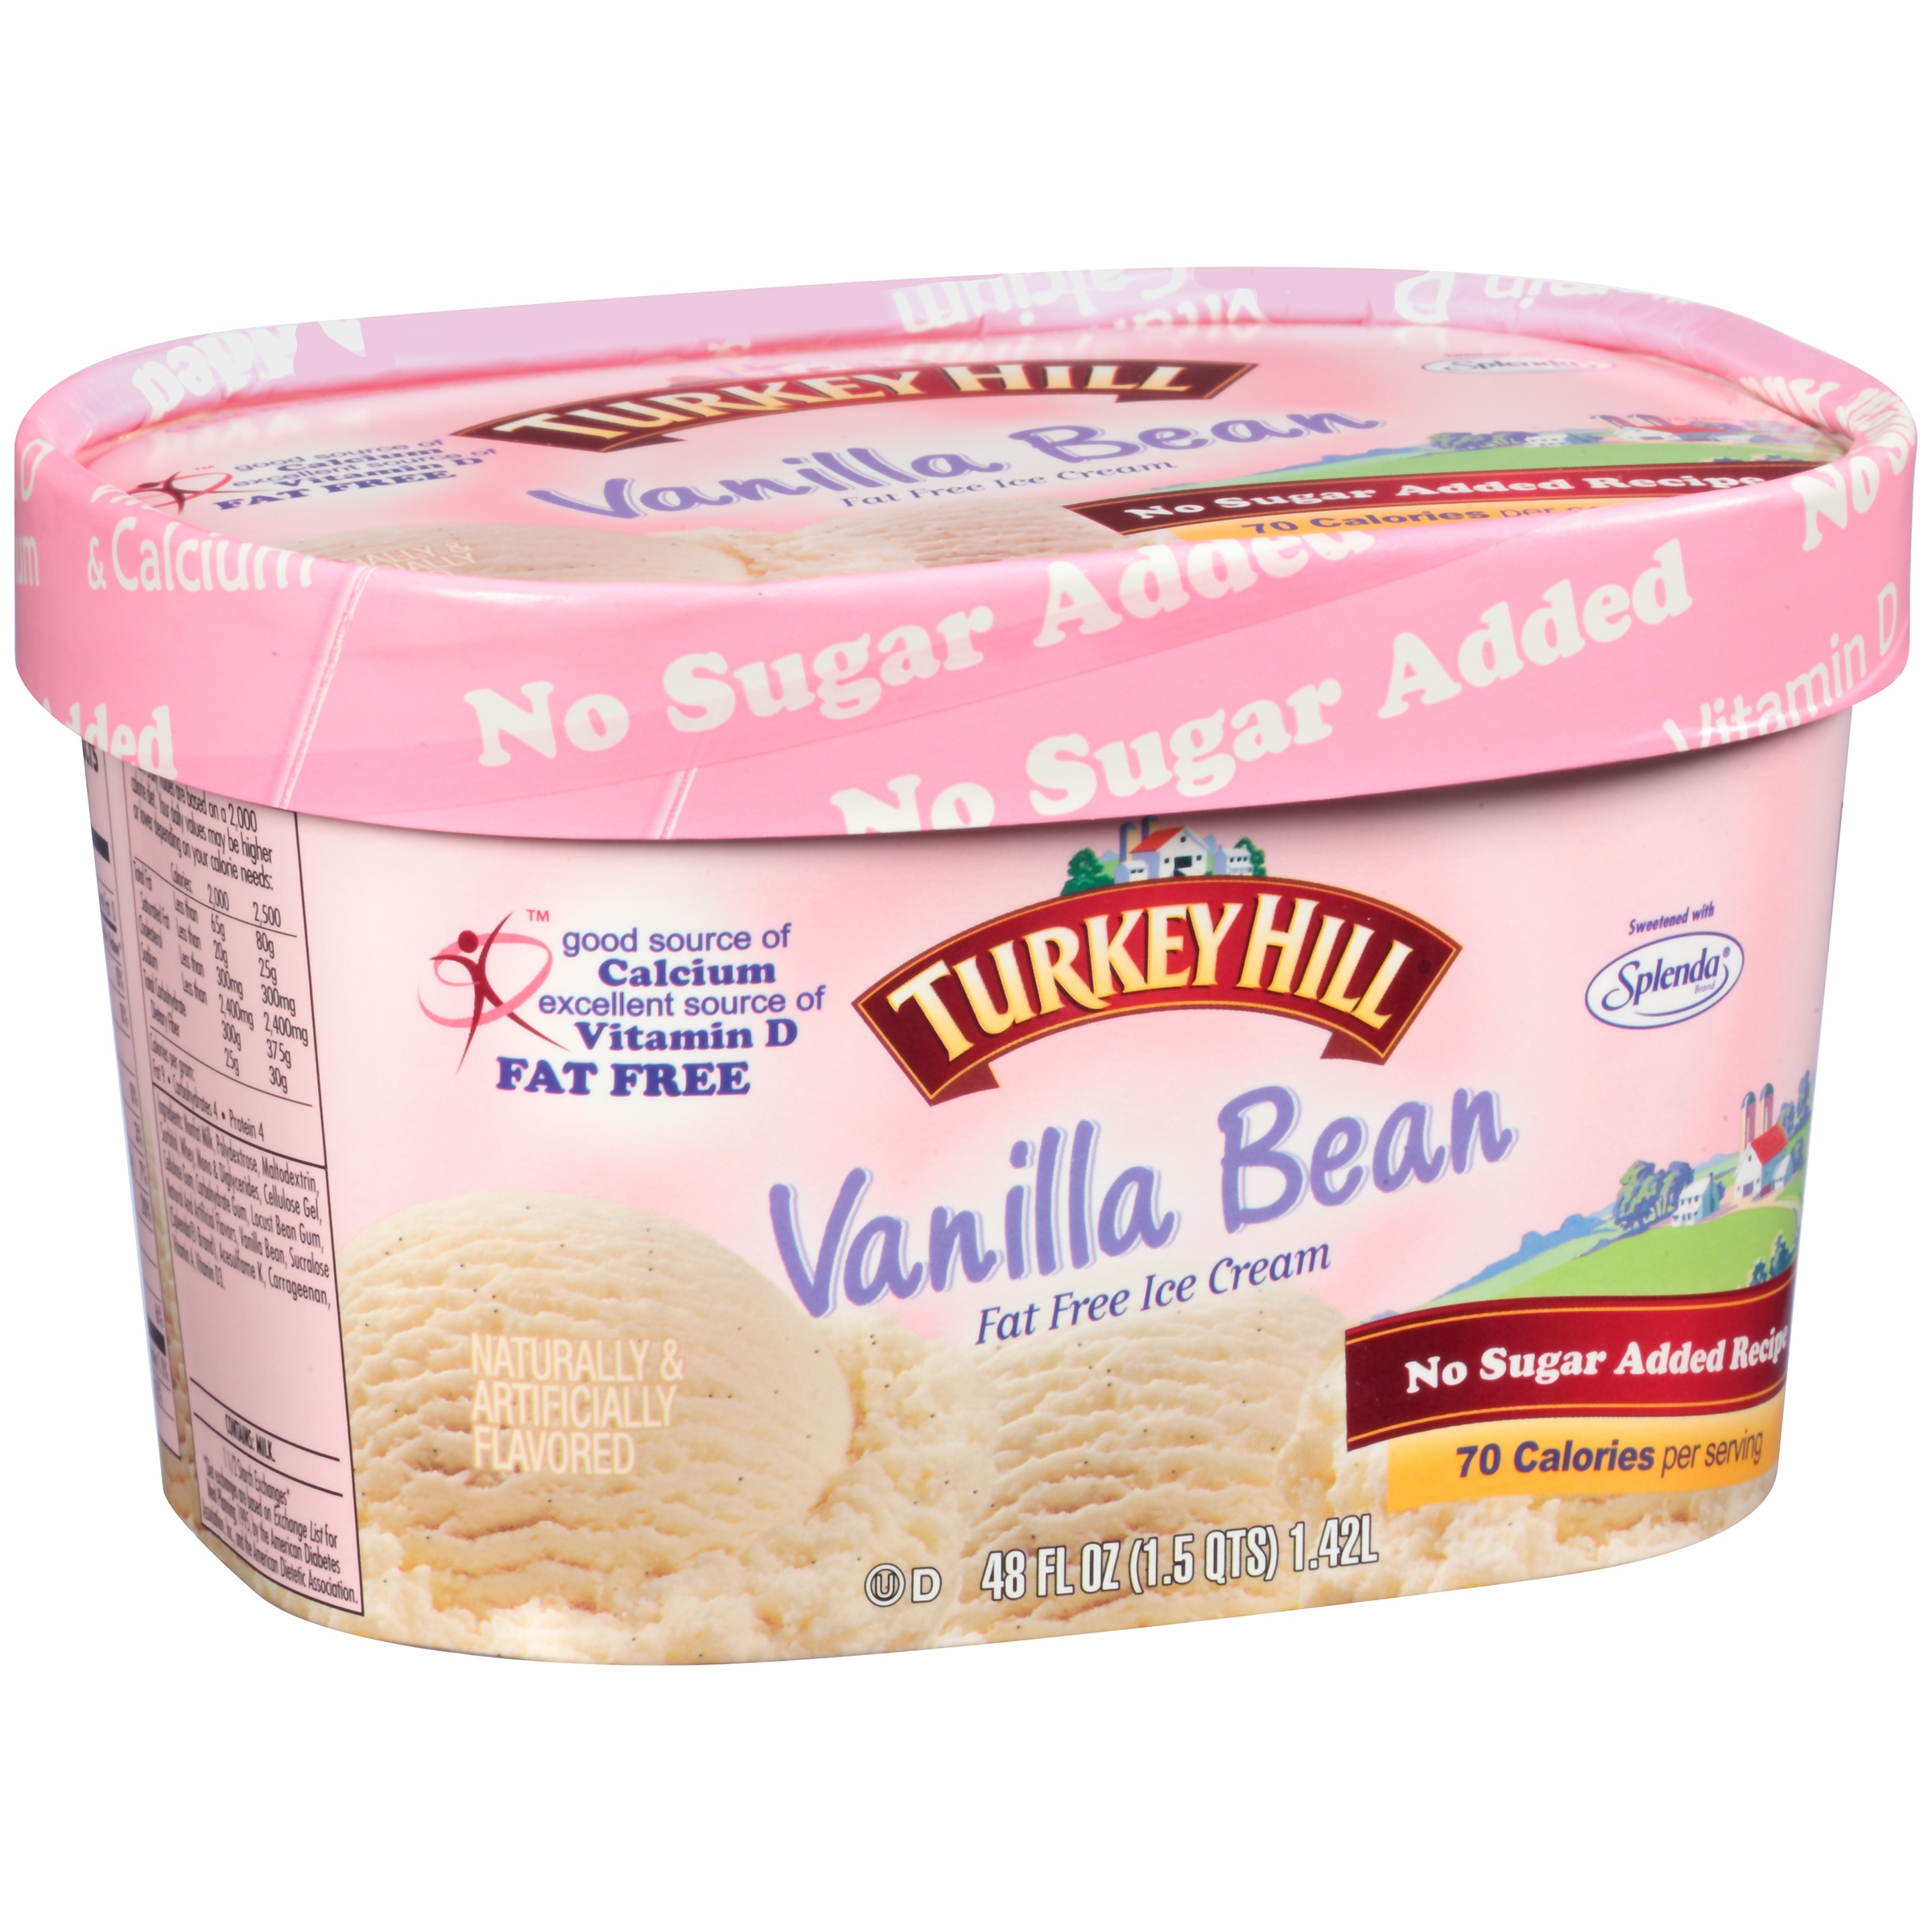 Turkey Hill Vanilla Bean Fat Free No Sugar Added Recipe Ice Cream 48 fl. oz. Tub